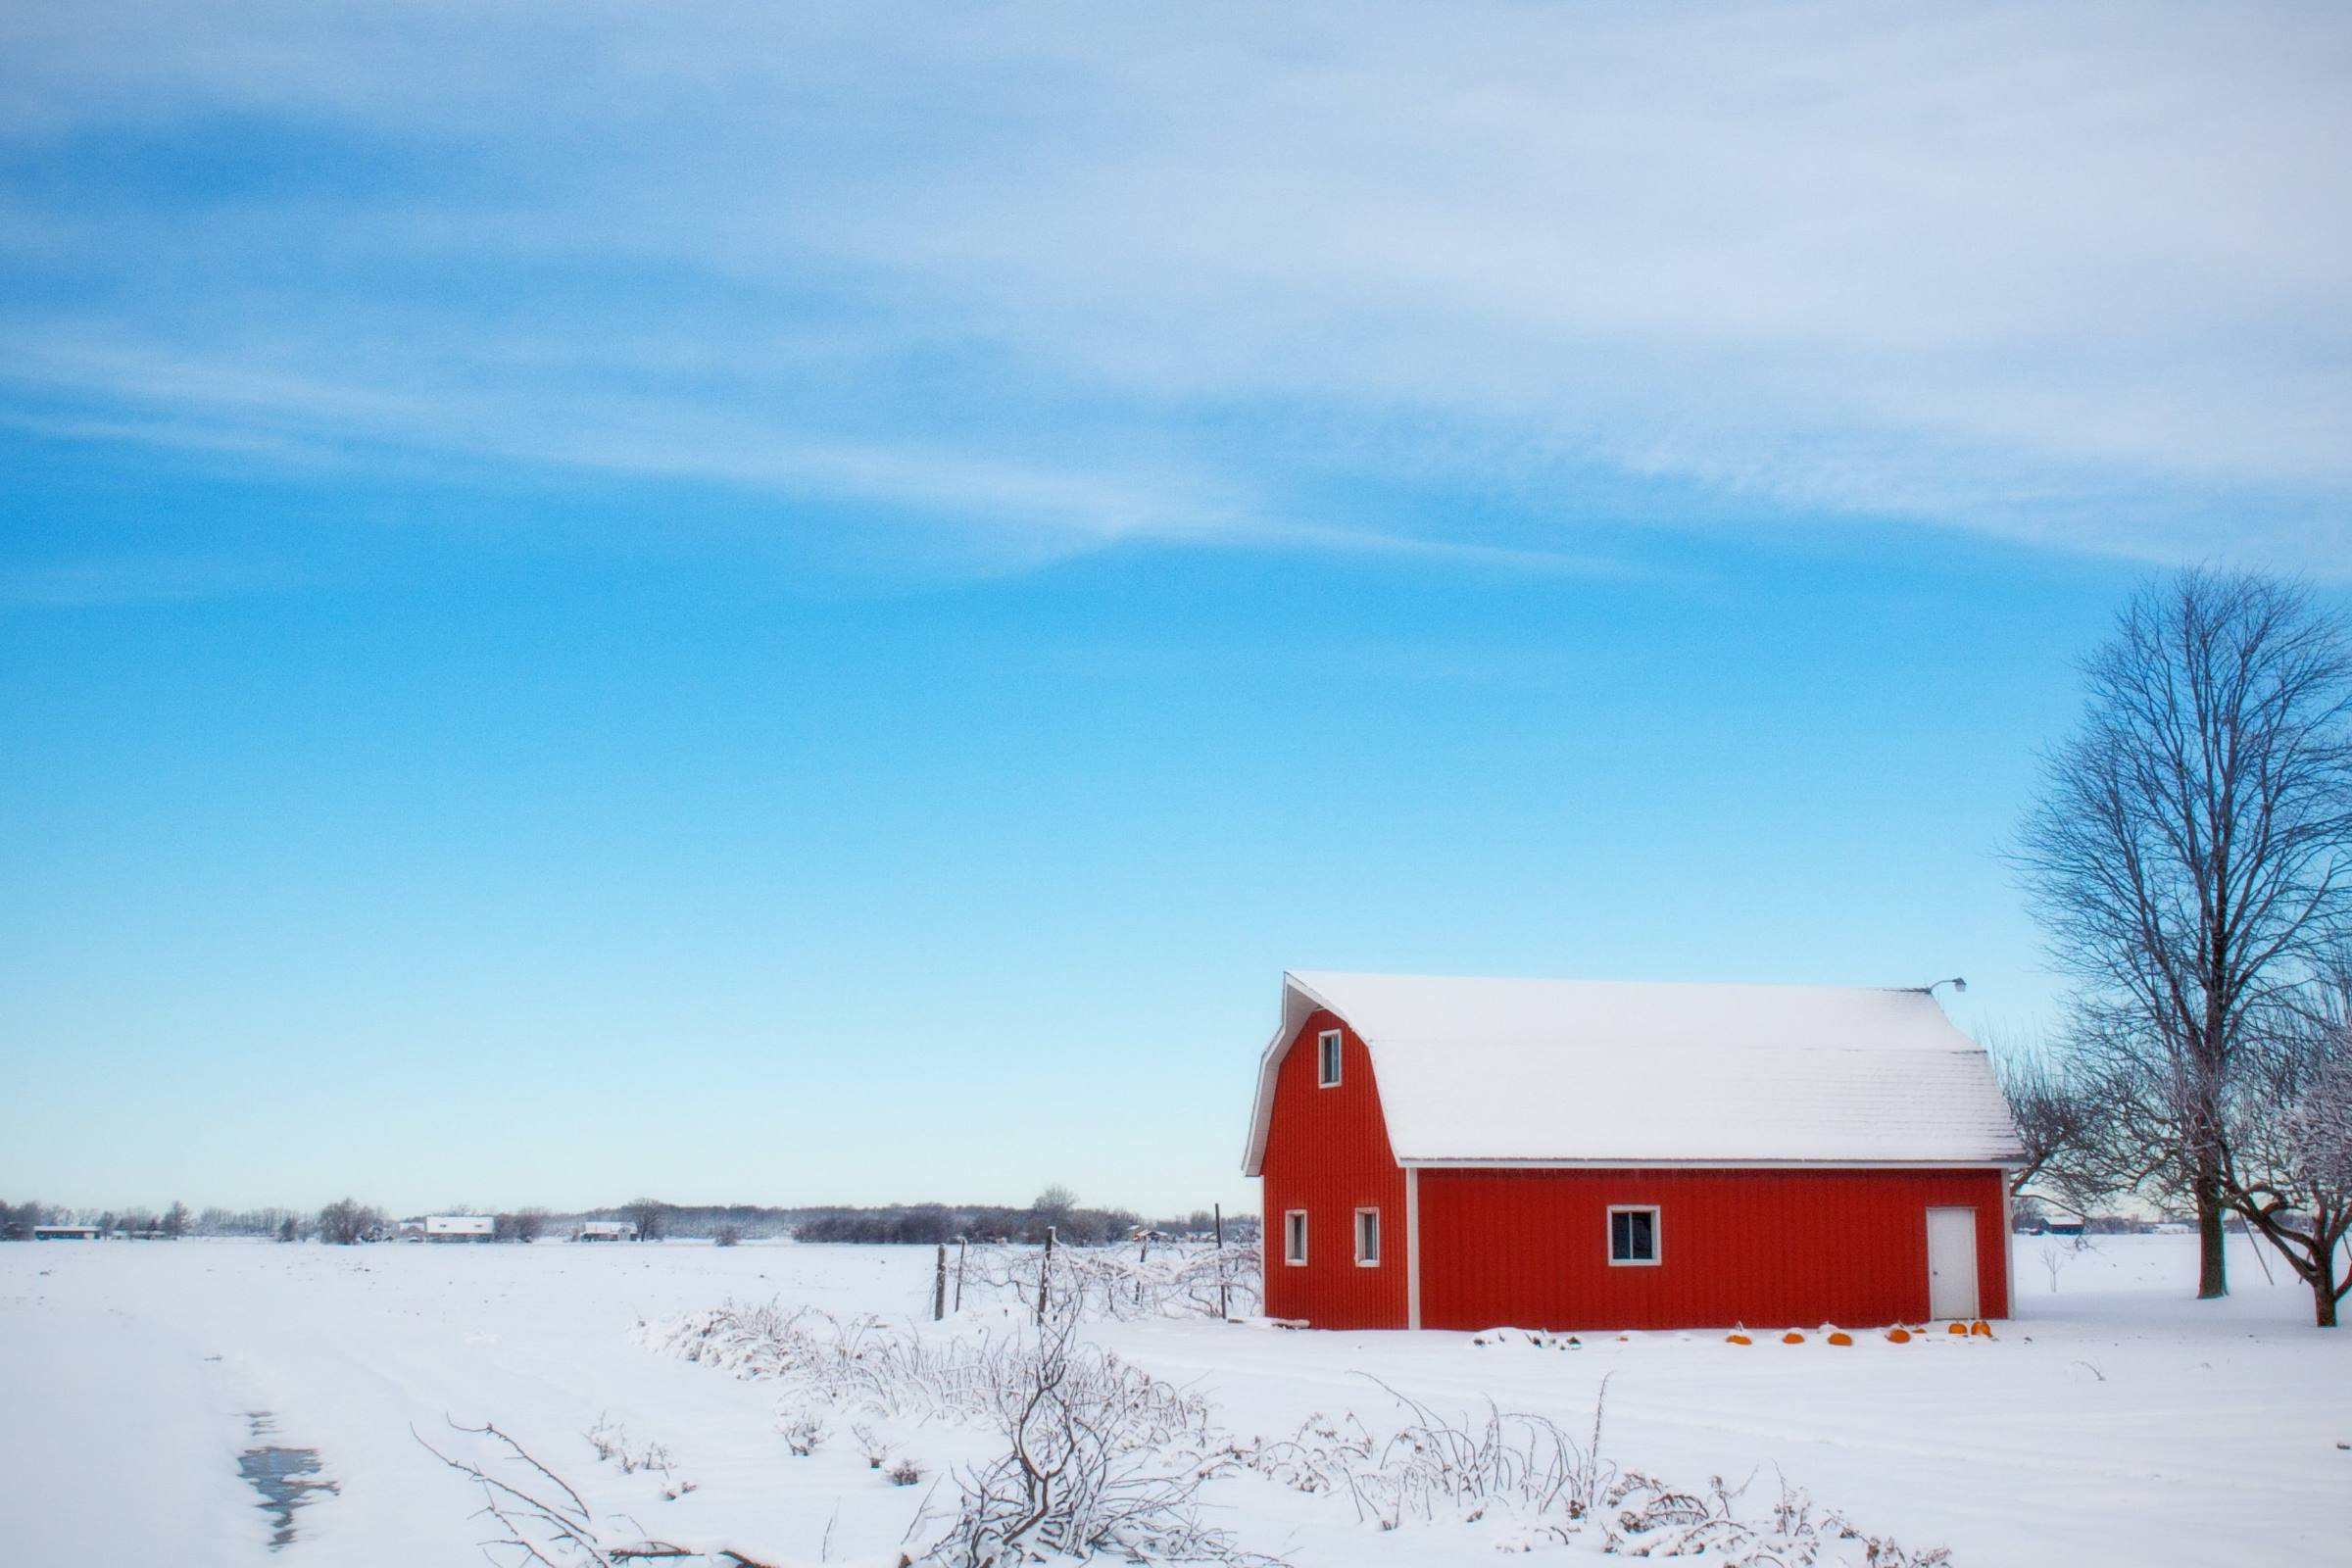 winter snow barn landscape fields trees